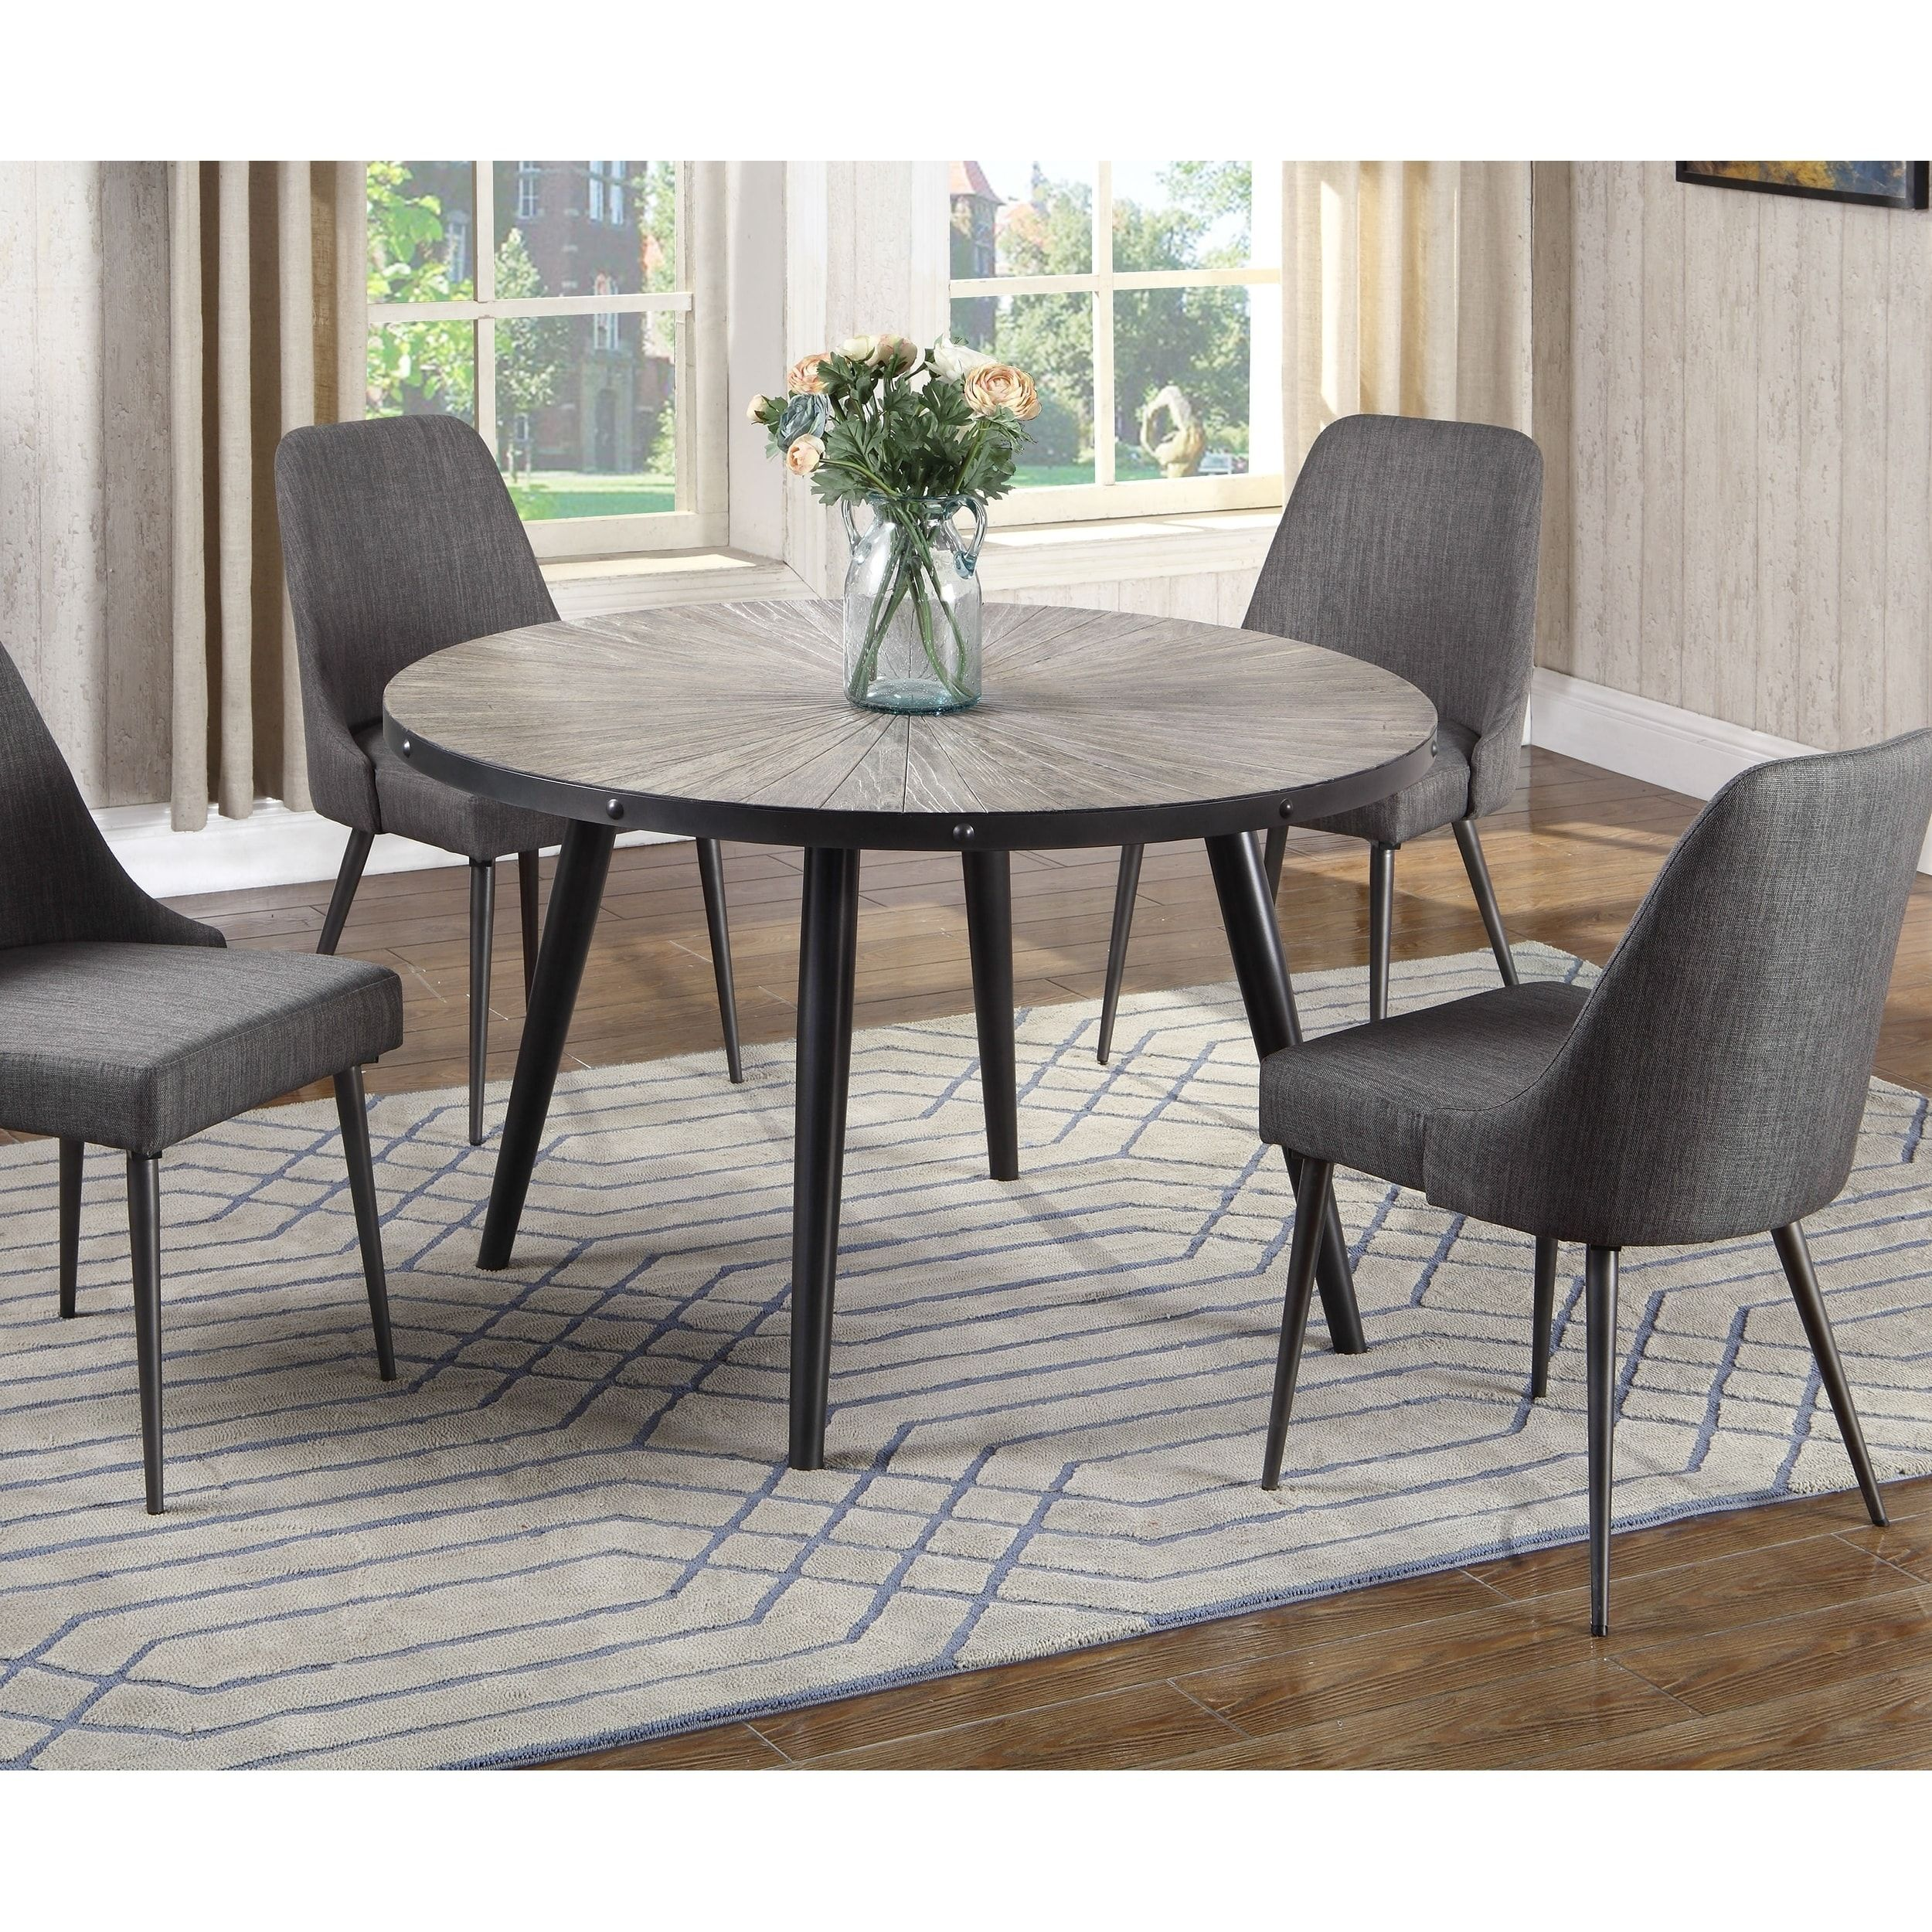 Overstock Com Online Shopping Bedding Furniture Electronics Jewelry Clothing More Midcentury Modern Dining Table Dining Table Round Dining Table